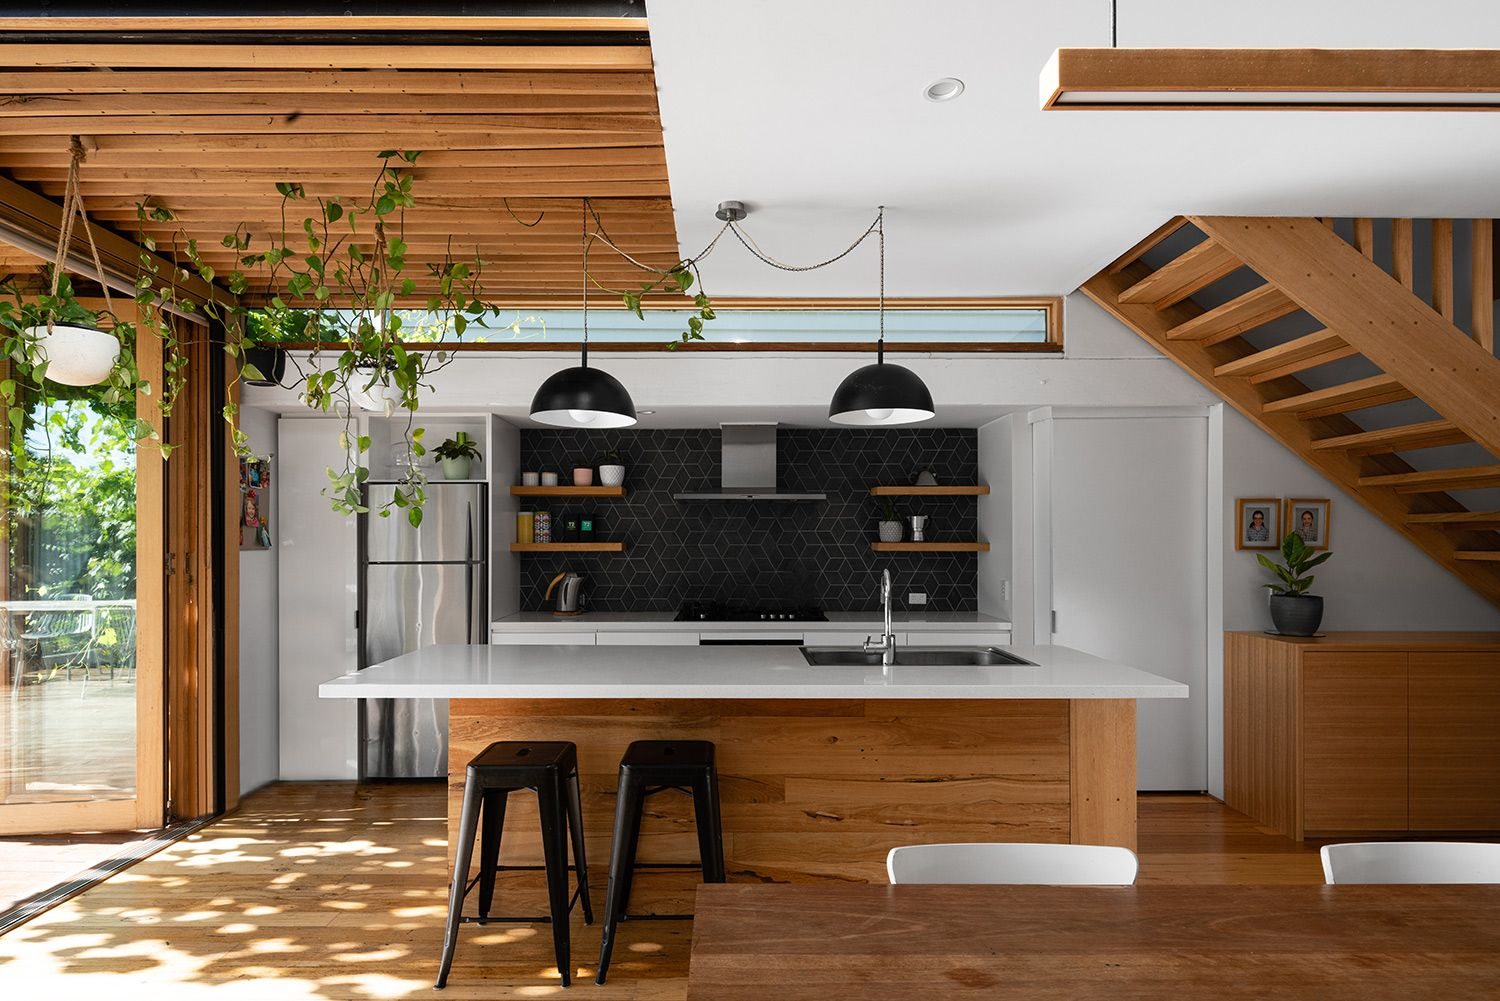 https://www.bencallery.com.au/wp-content/uploads/2015/05/42_-Callery-House-Ben-Callery-Architects-high-res-03.jpg